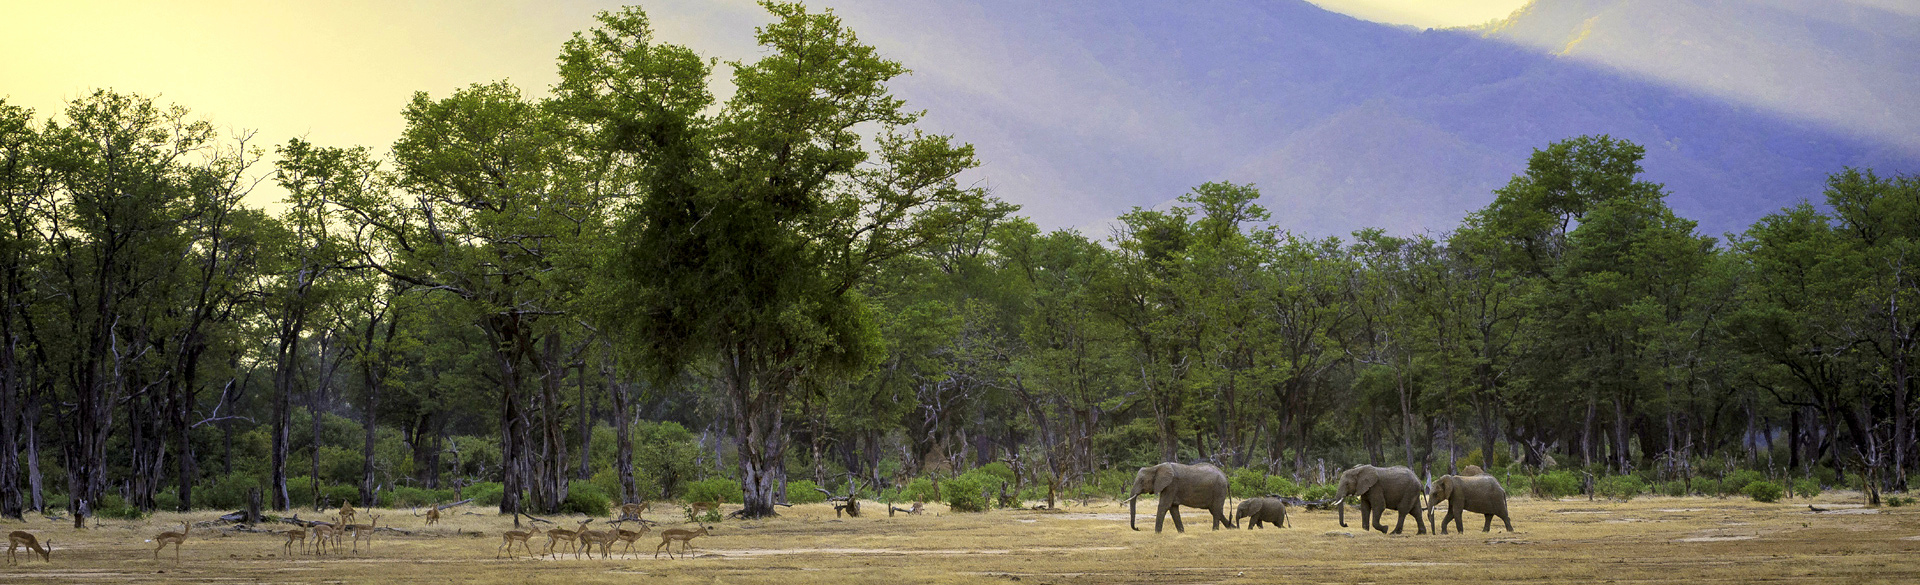 Elephants on the Mana Pools floodplain by Dana Allen courtesy Wilderness Safaris